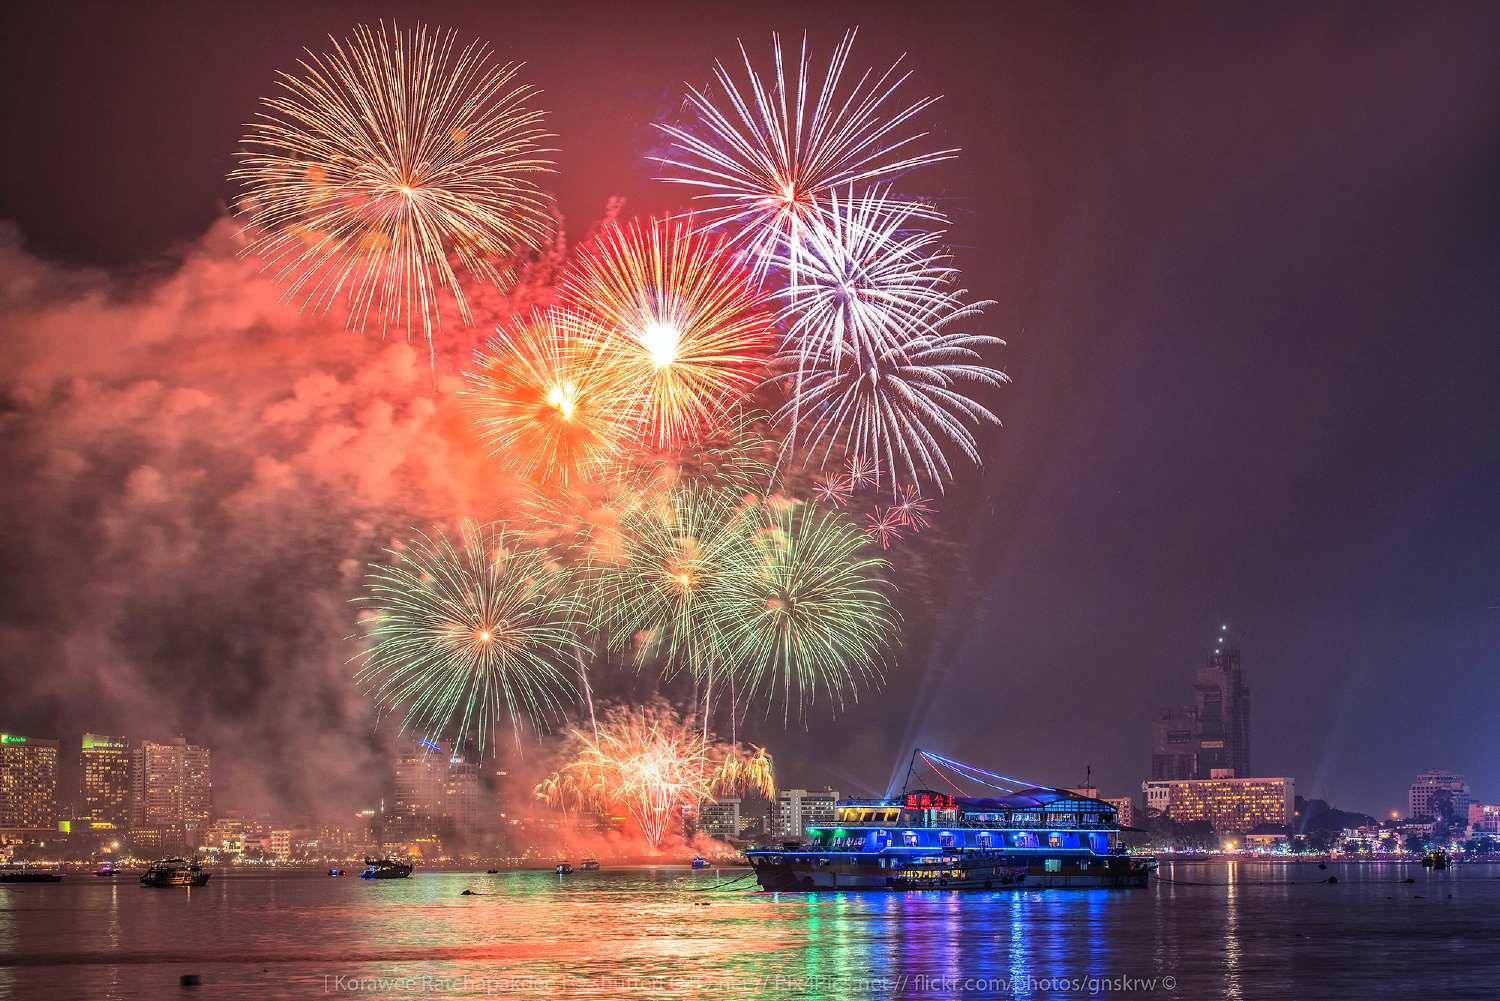 Fireworks in the sky of Pattaya